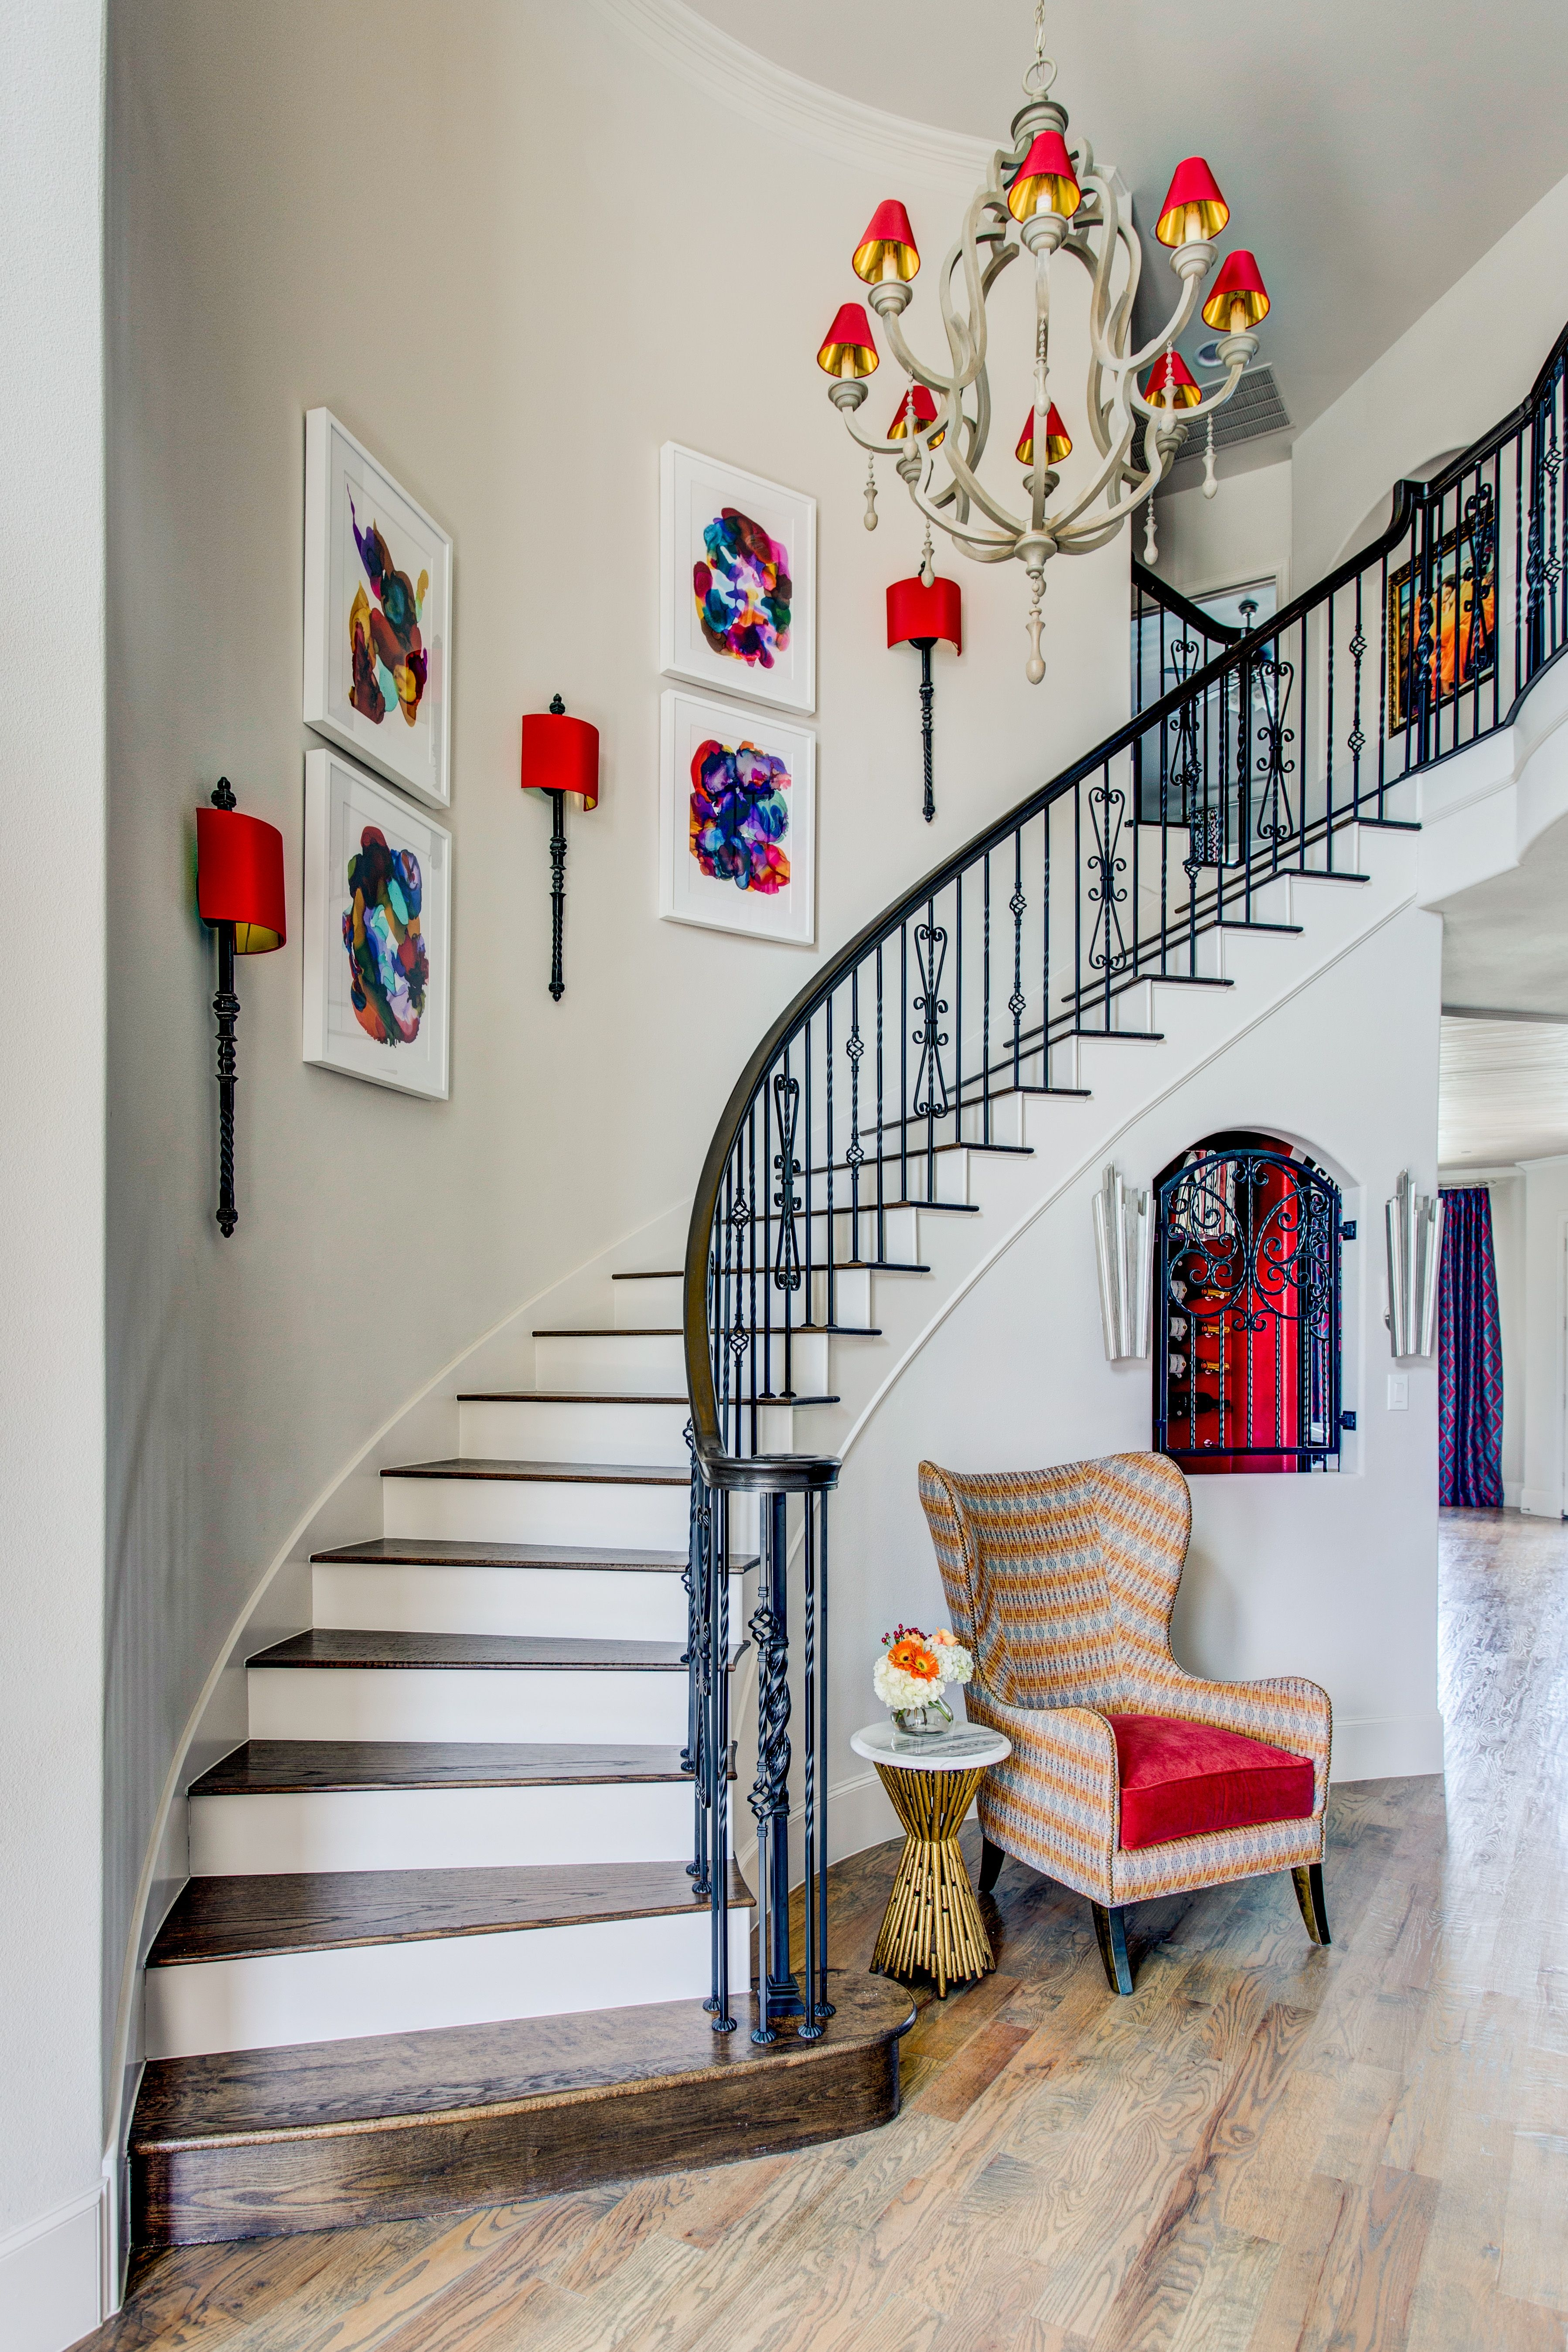 27 Stylish Staircase Decorating Ideas How To Decorate Stairways | Stairs In Home Design | Wall | Luxury | Creative | Home Out | Ultra Modern